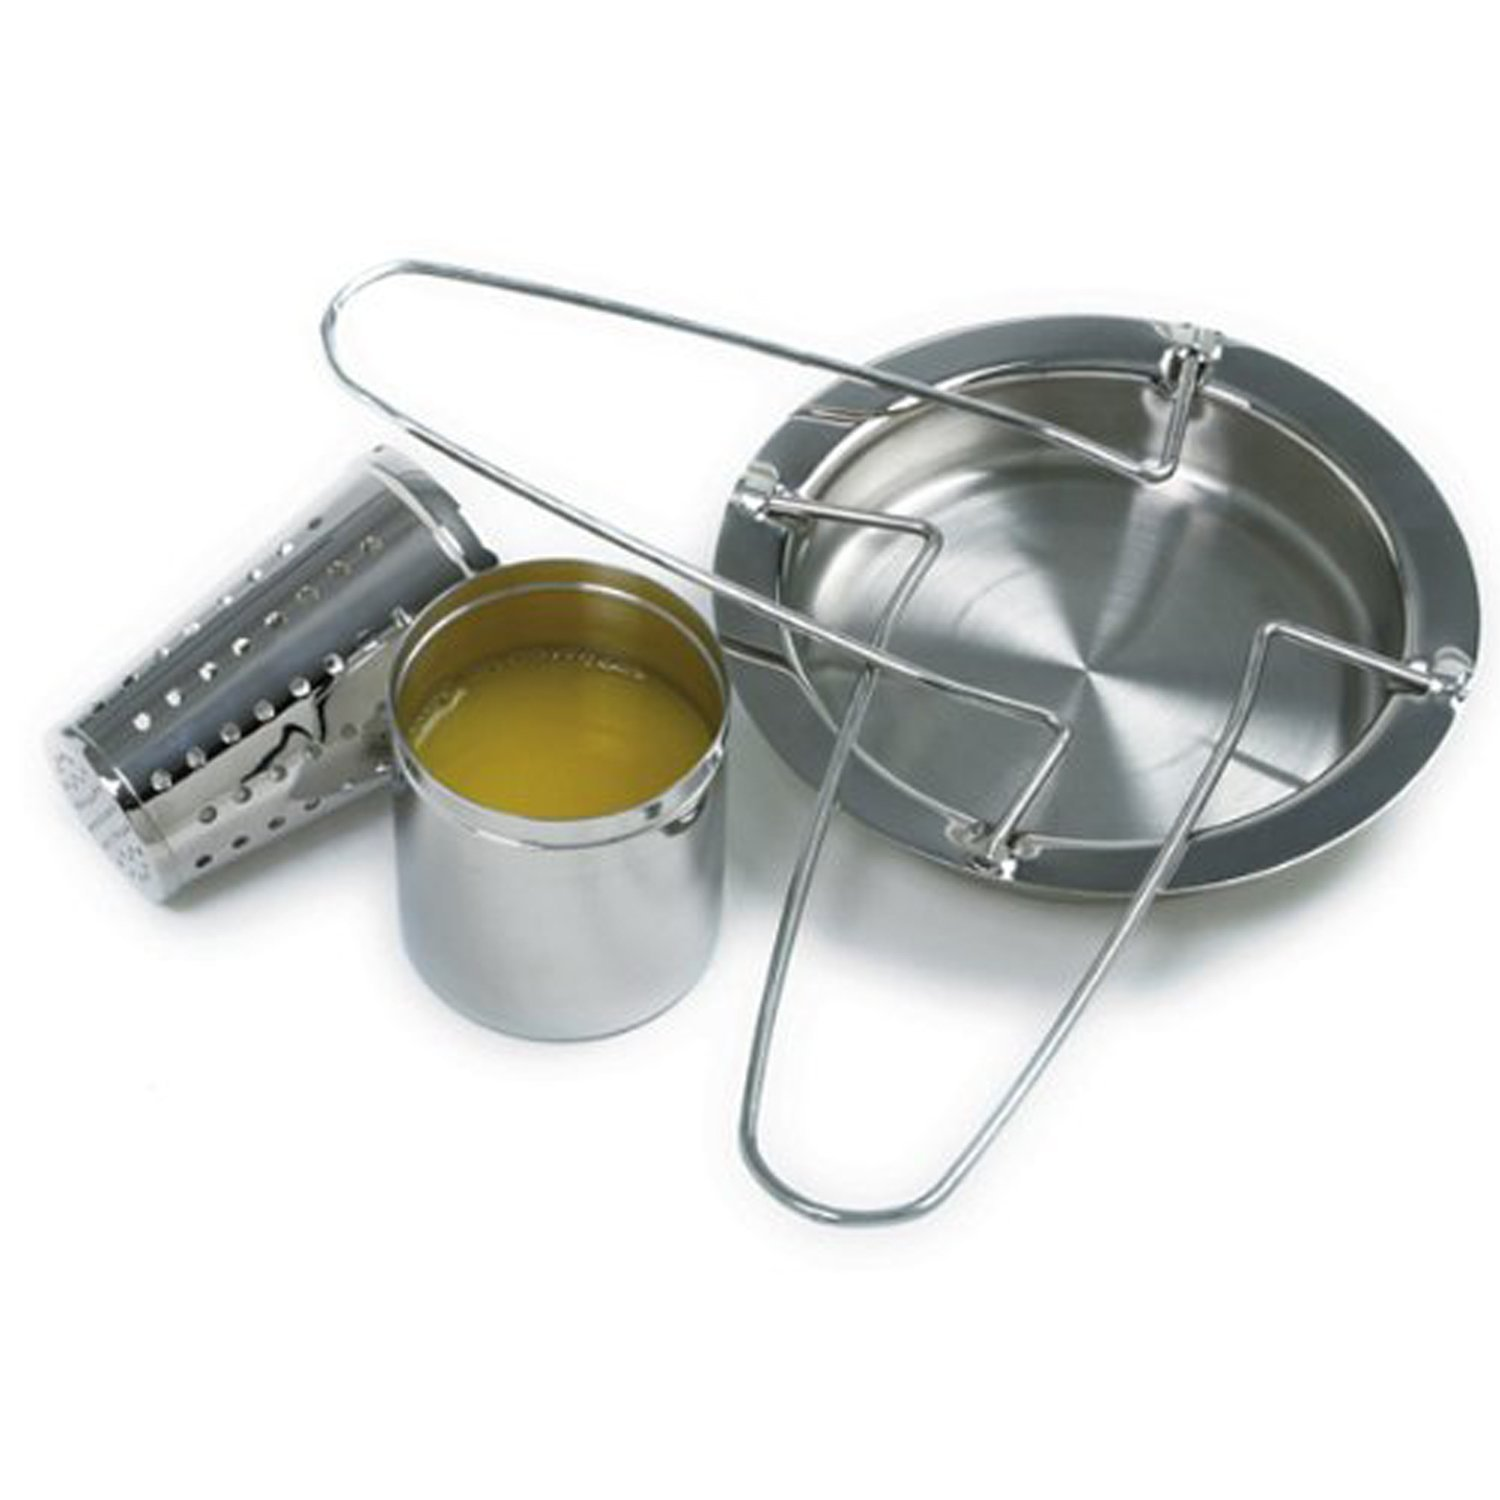 Norpro Stainless Steel Vertical Roaster with Infuser